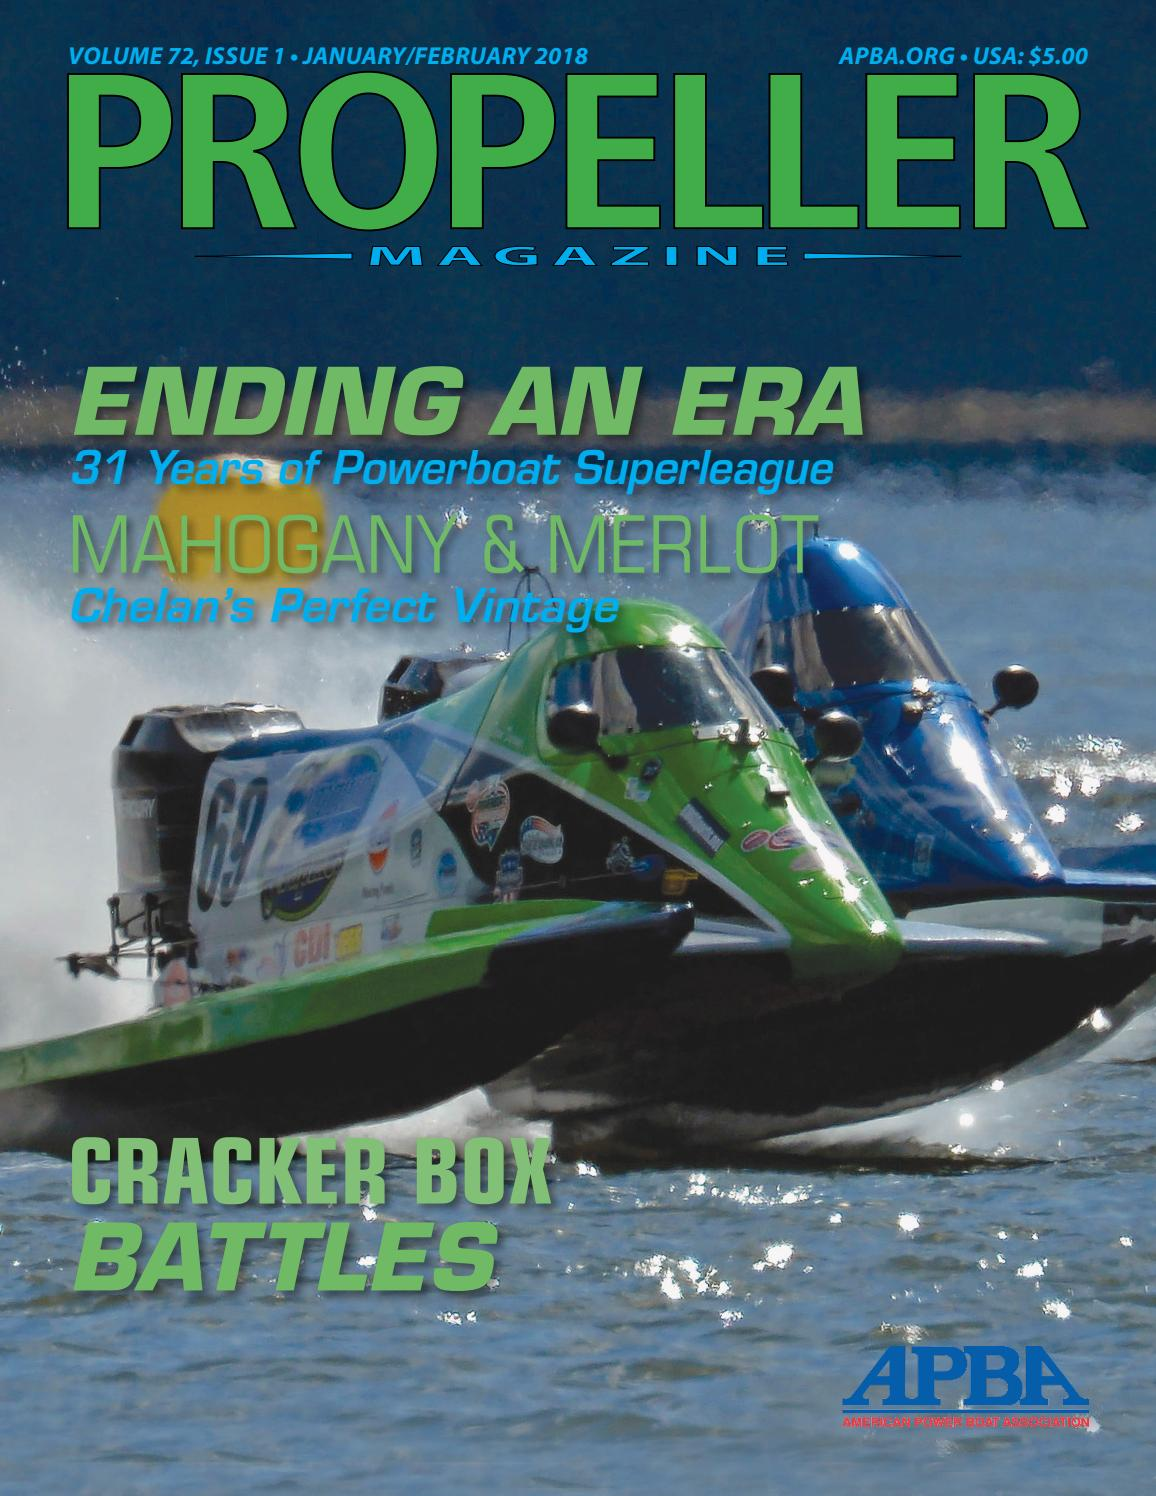 JanuaryFebruary 2018 Propeller Magazine by APBA